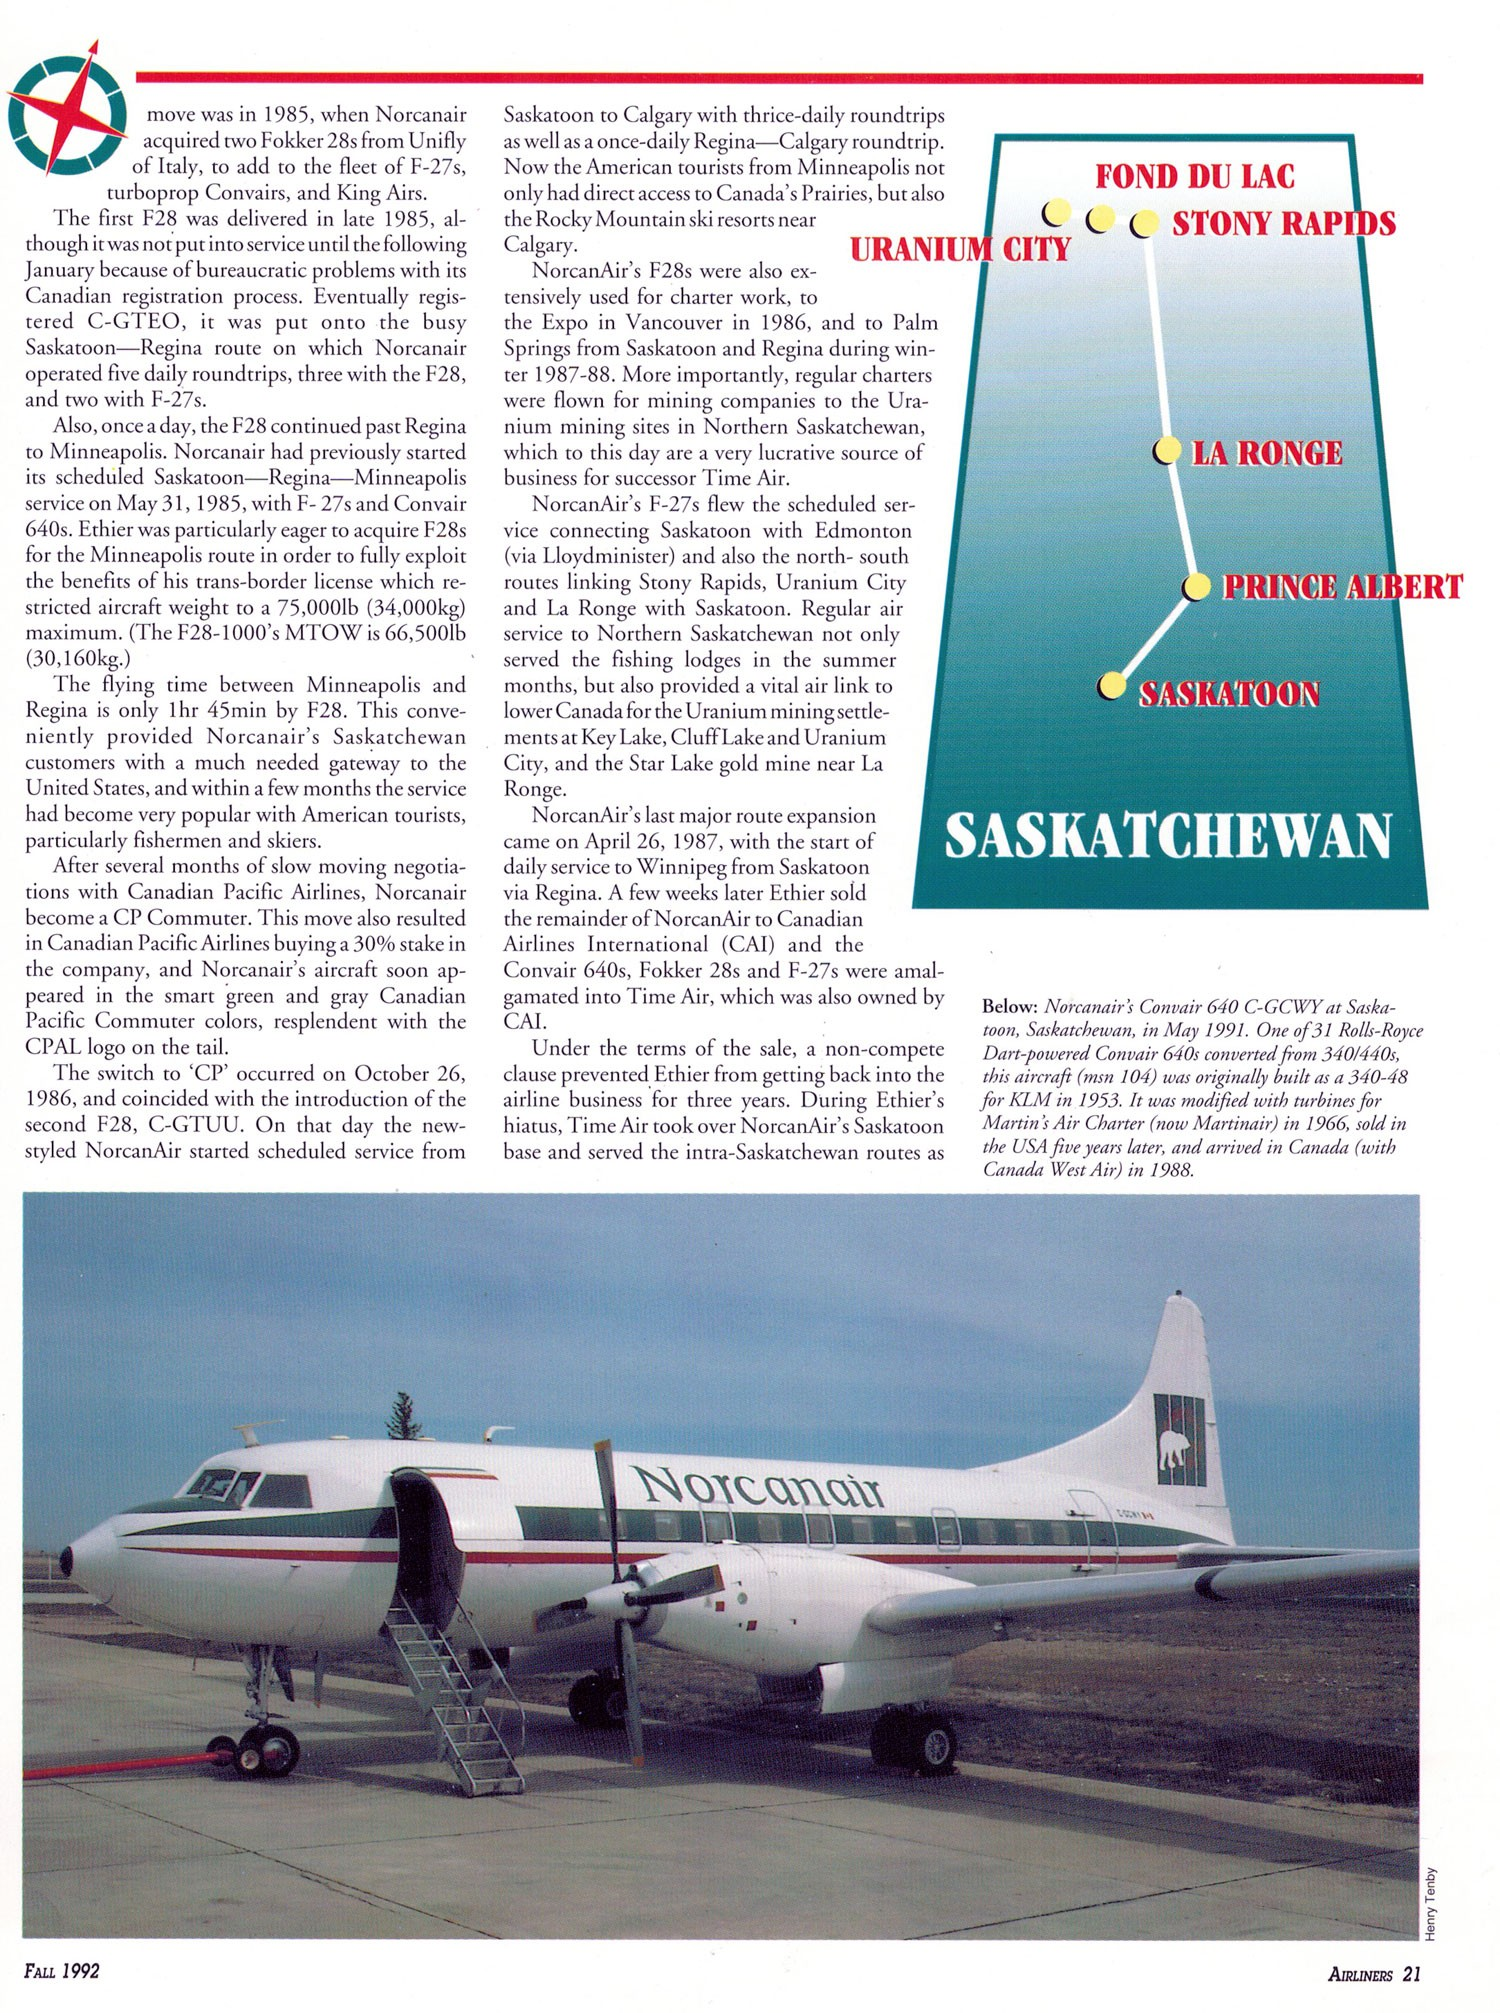 Norcanair Takes Off story and photos by Henry Tenby